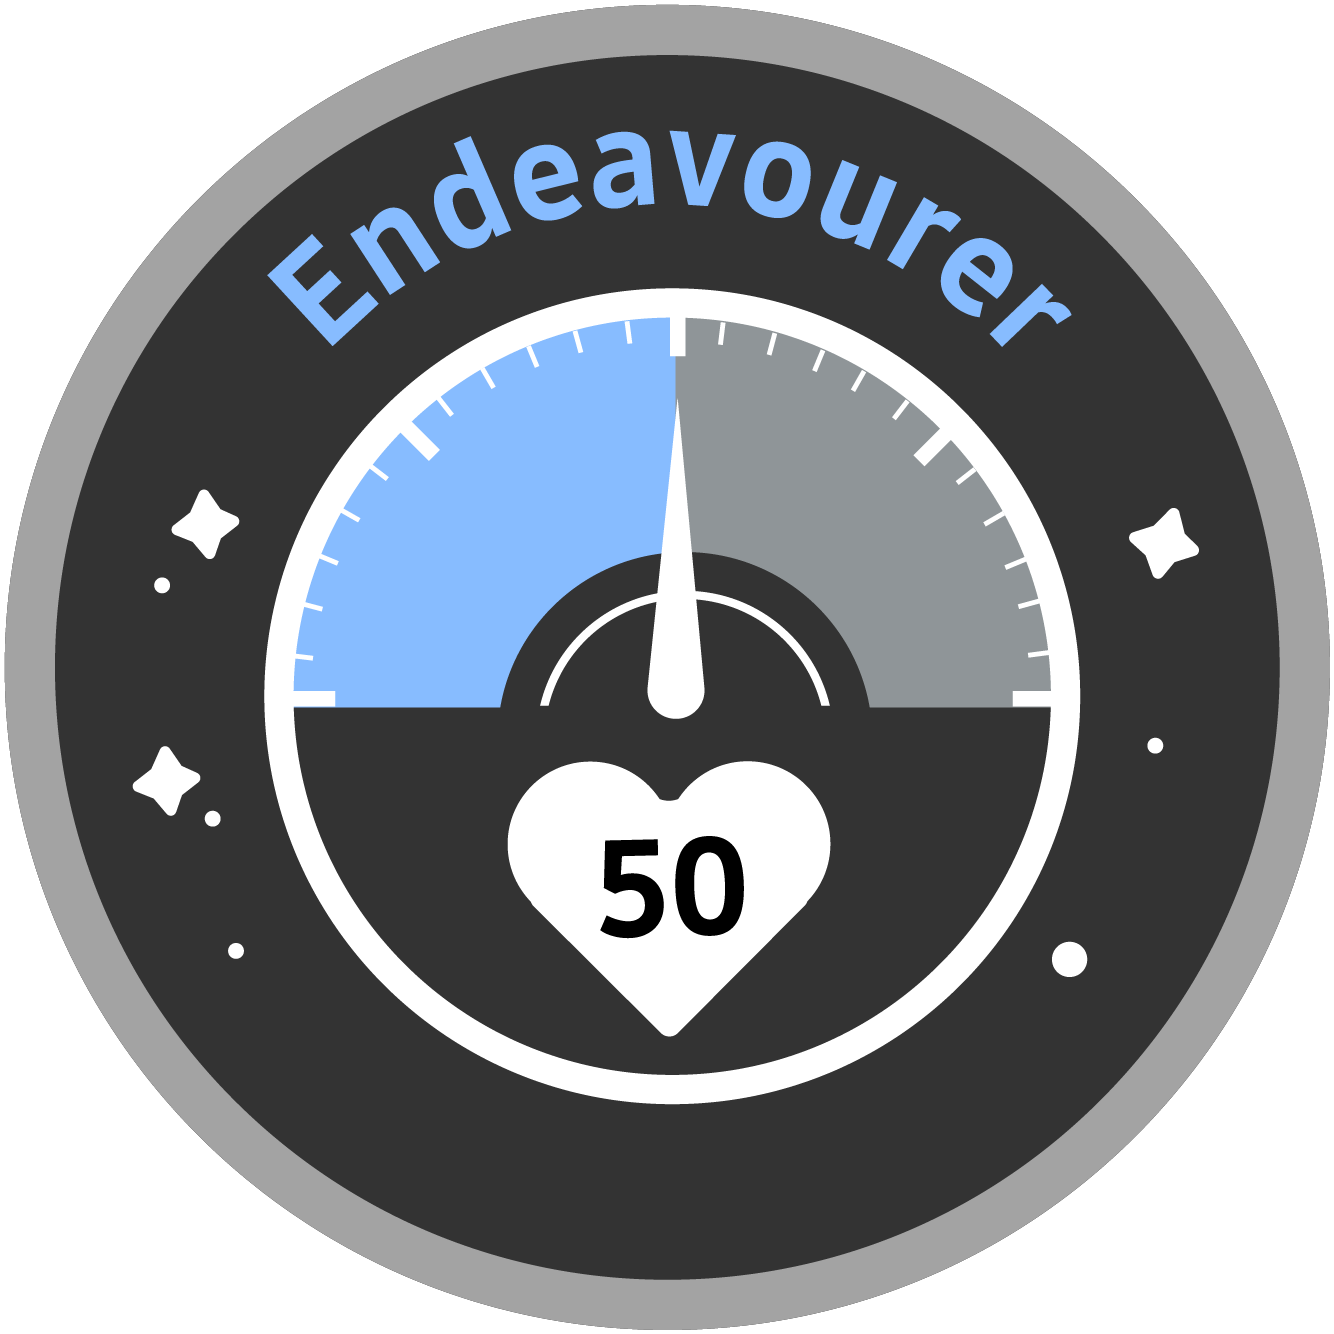 Endeavourer